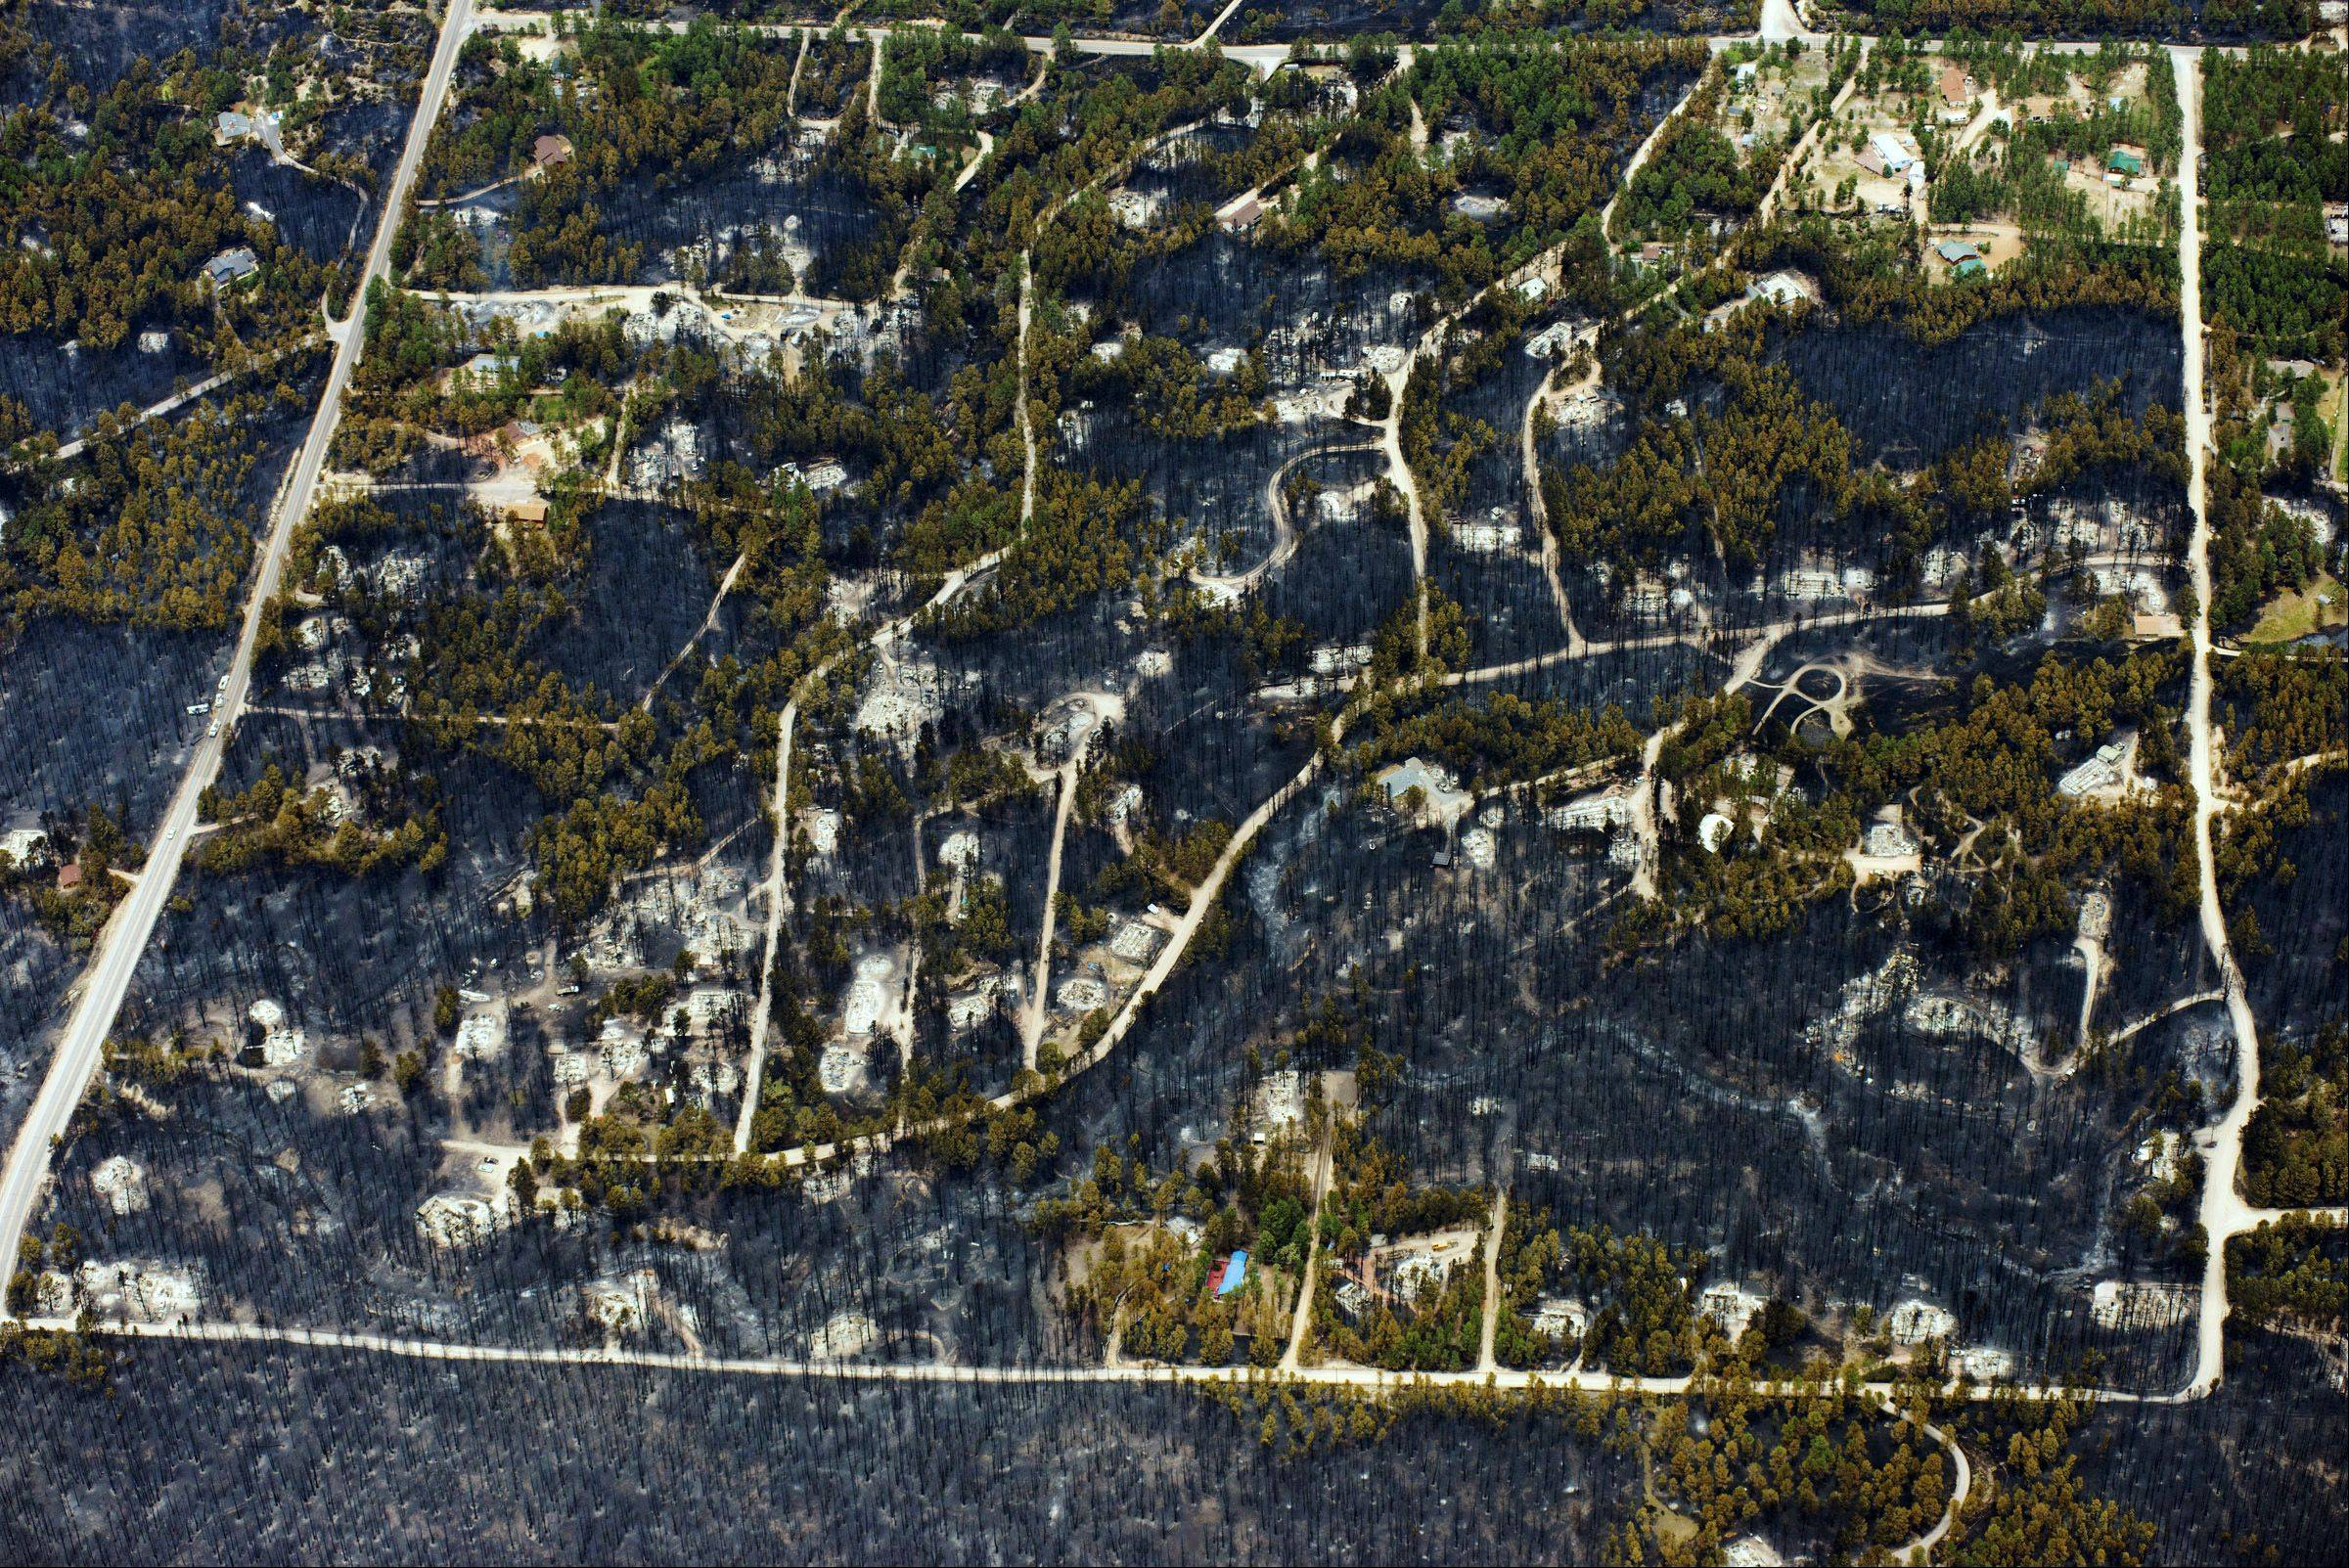 Burst trees and destroyed homes are left in the wake of a wildfire in the densely wooded Black Forest area northeast of Colorado Springs, Colo., Thursday, June 13, 2013. More than 350 homes were lost in what is now the most destructive wildfire in Colorado history.